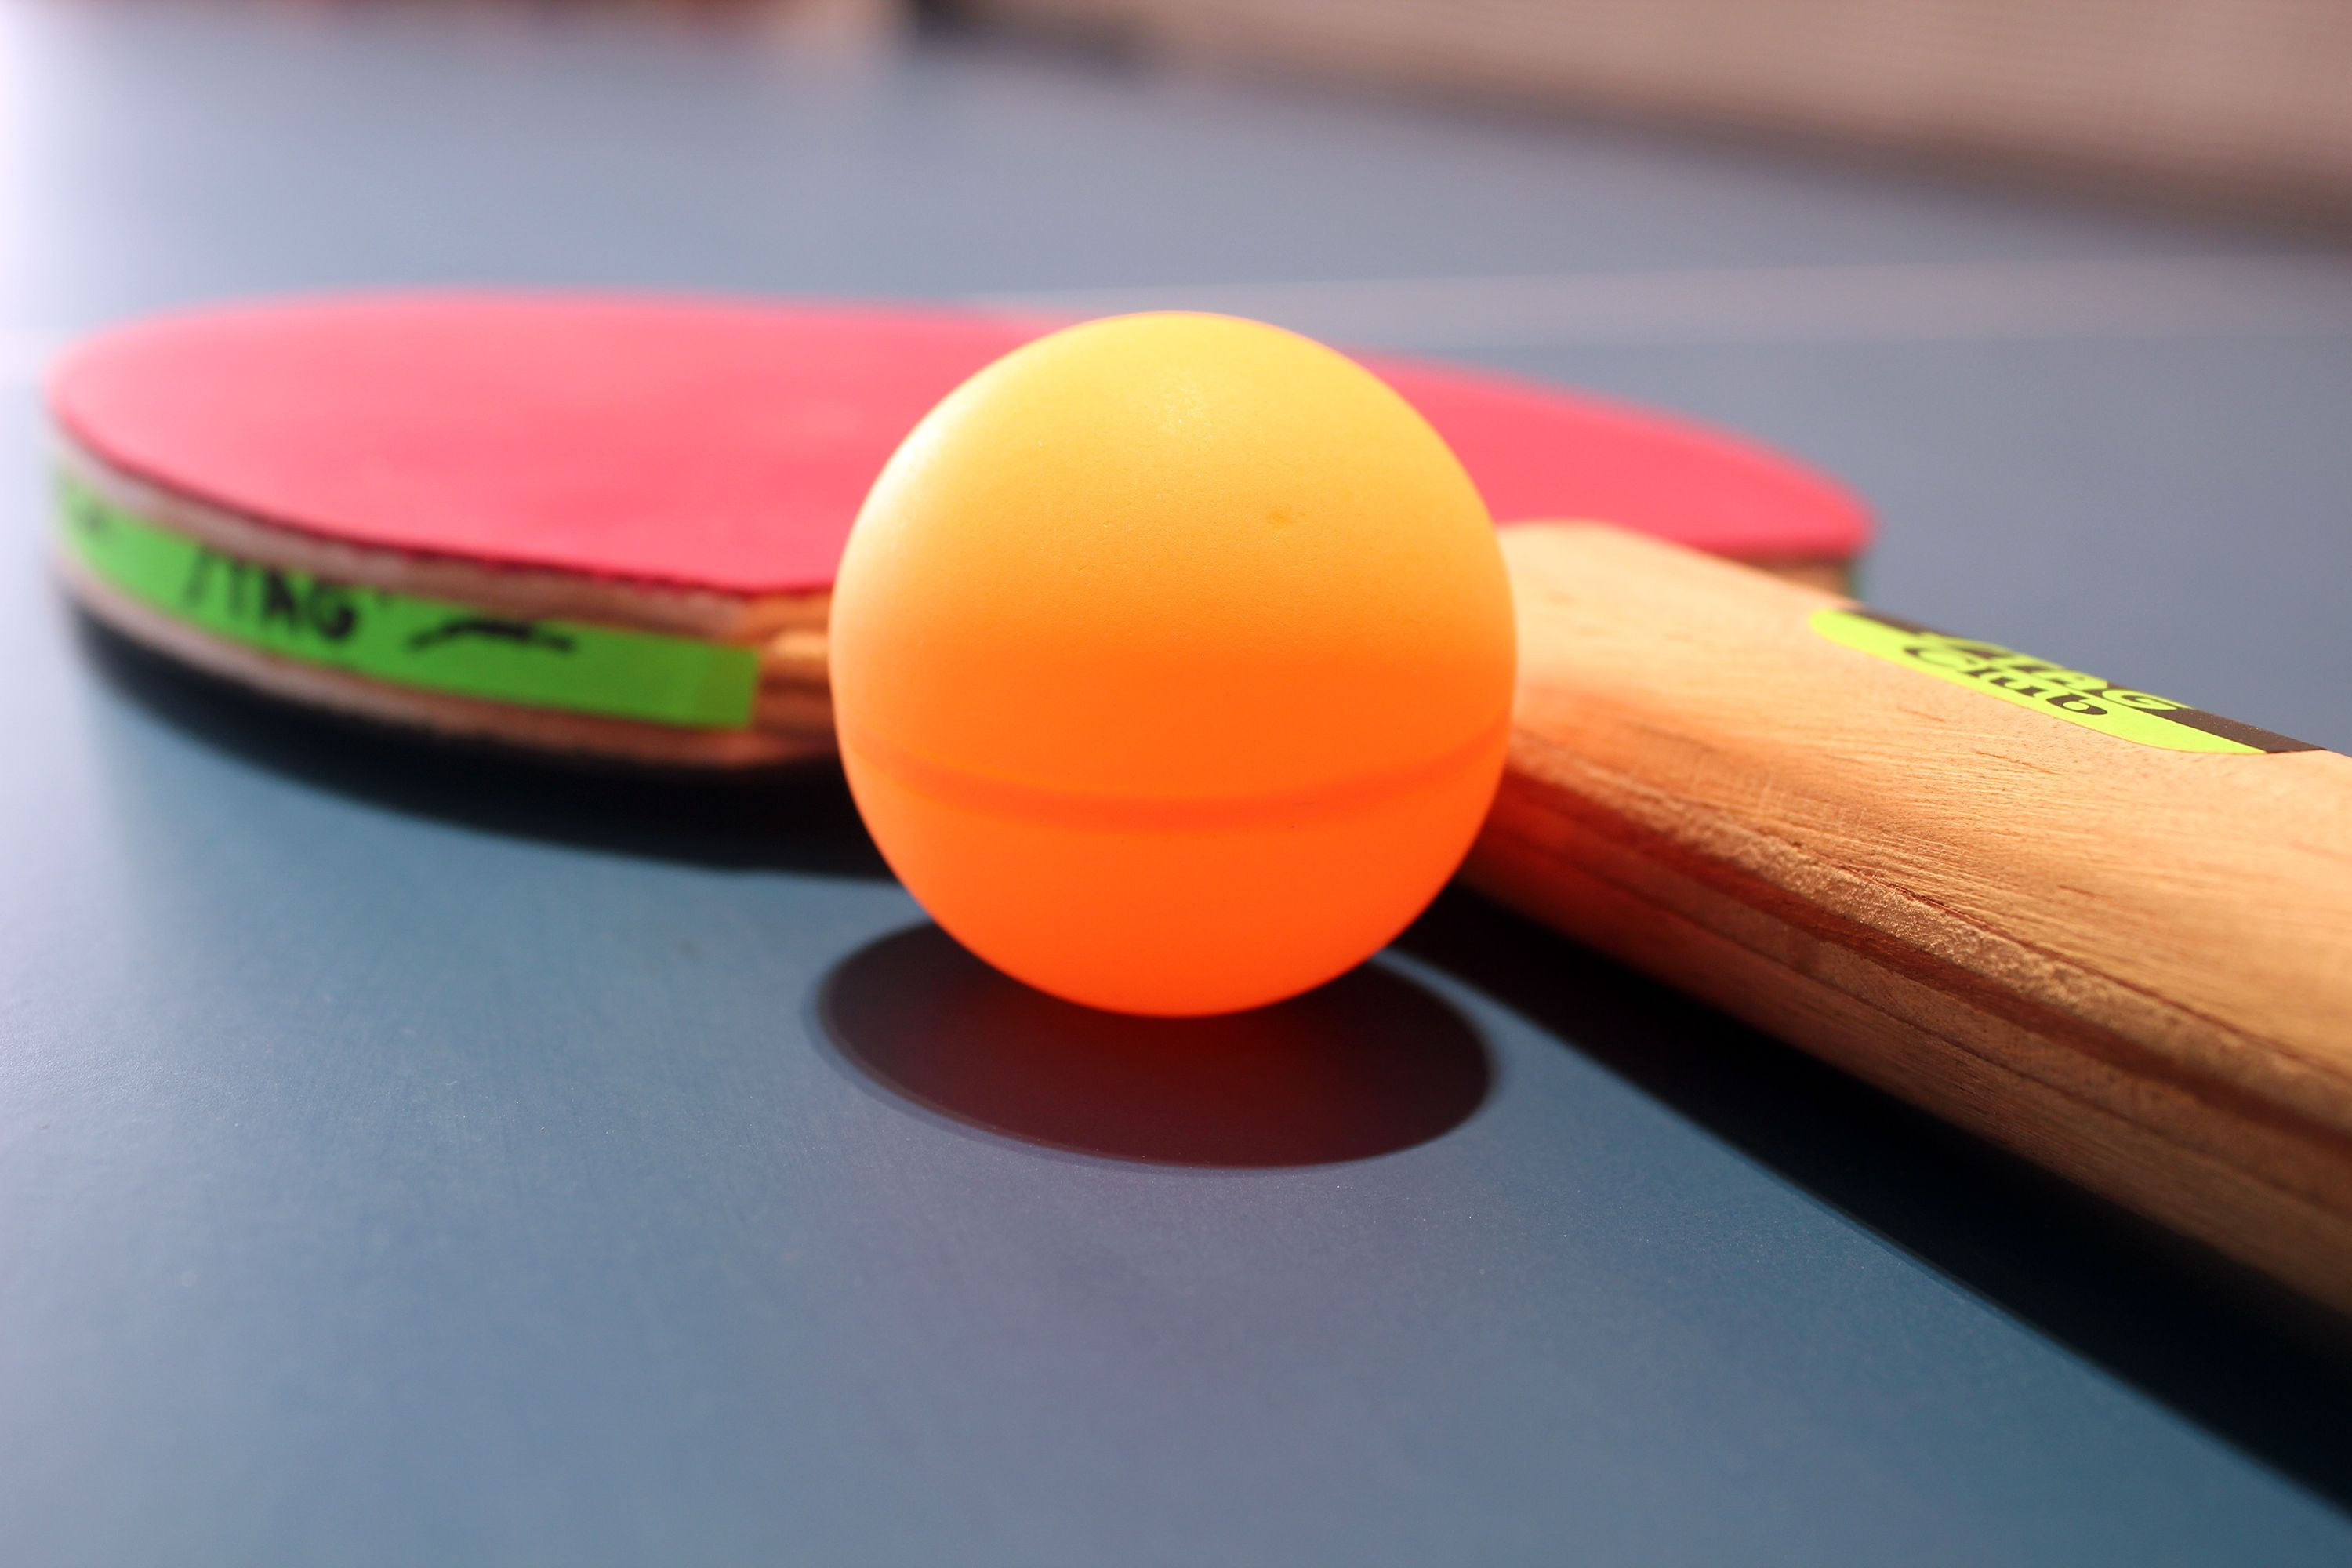 Ball Table Tenni Ping Pong Table Tennis Ball And Racket On Ping Pong Table Download Links Table Tennis Tennis Ball Court Flooring